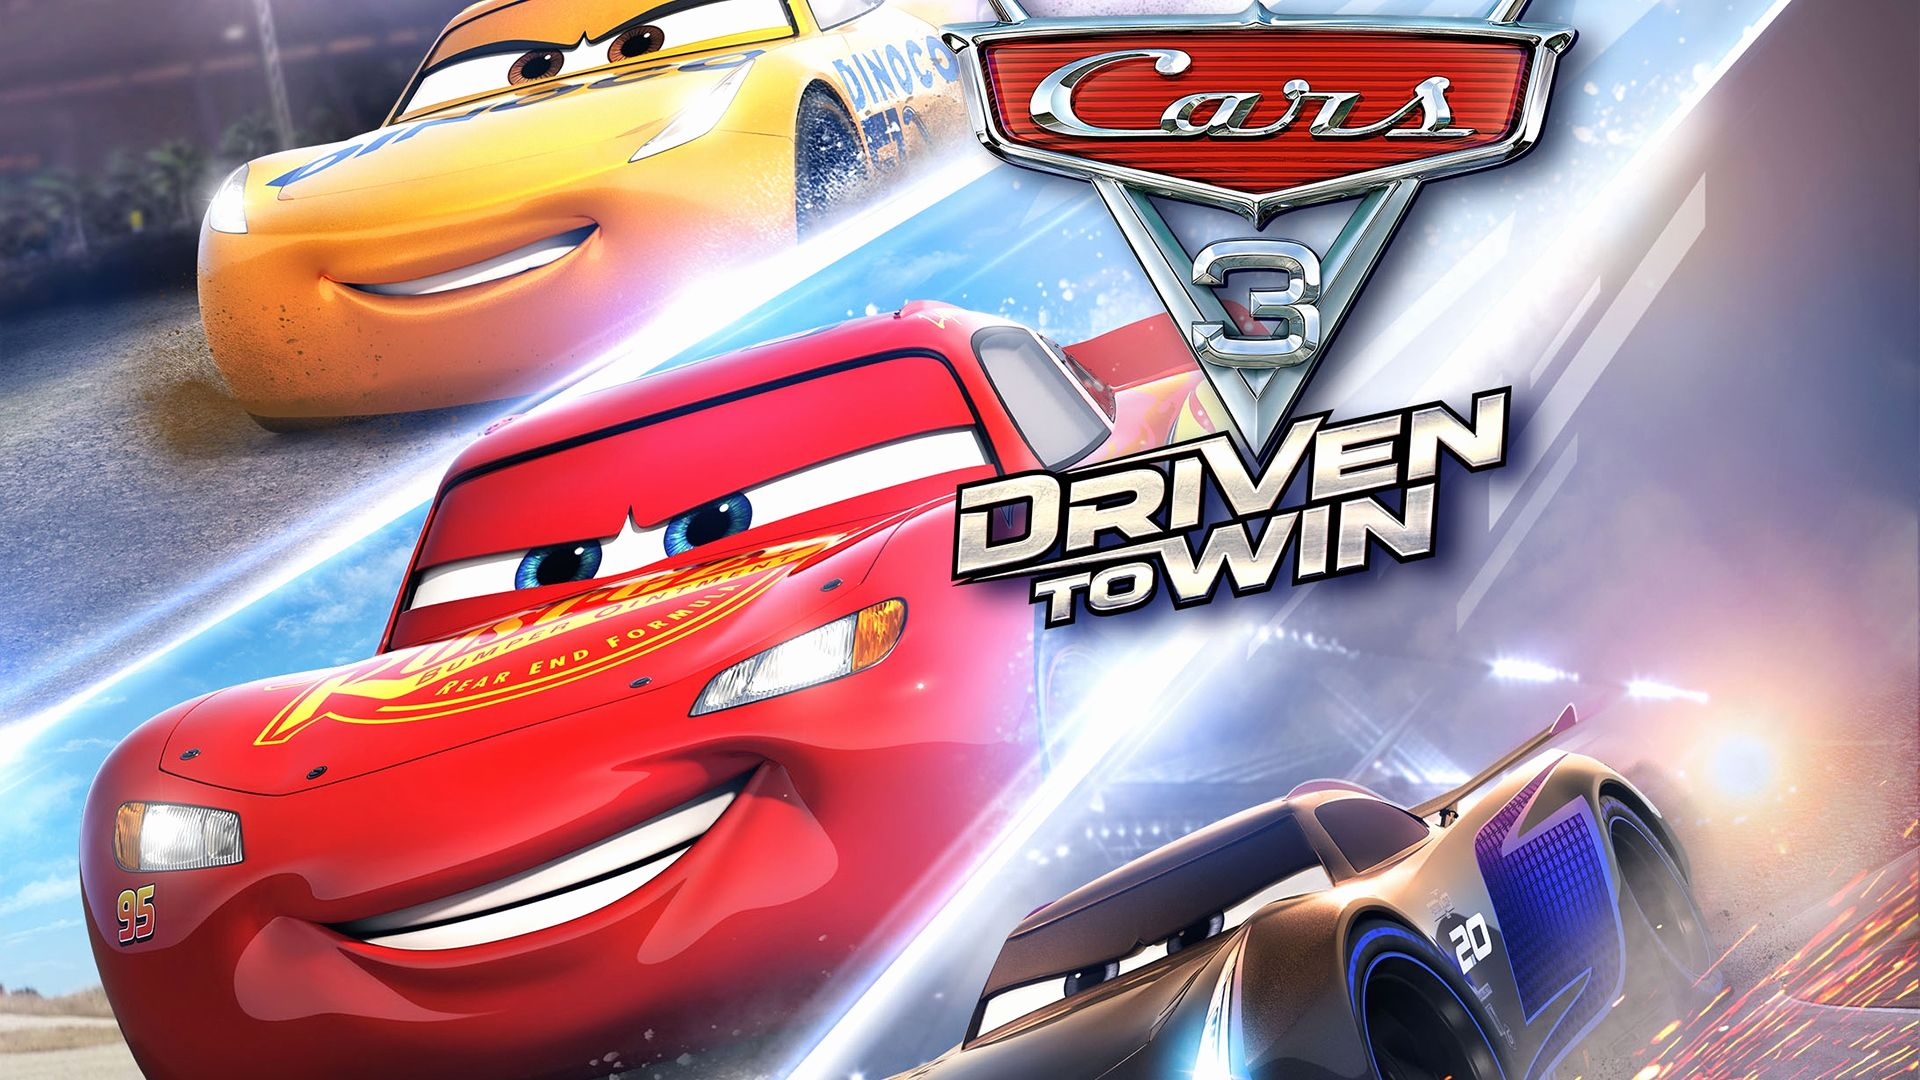 Disney Cars Wallpapers Awesome Cars 3 Wallpaper Wallpapers Browse